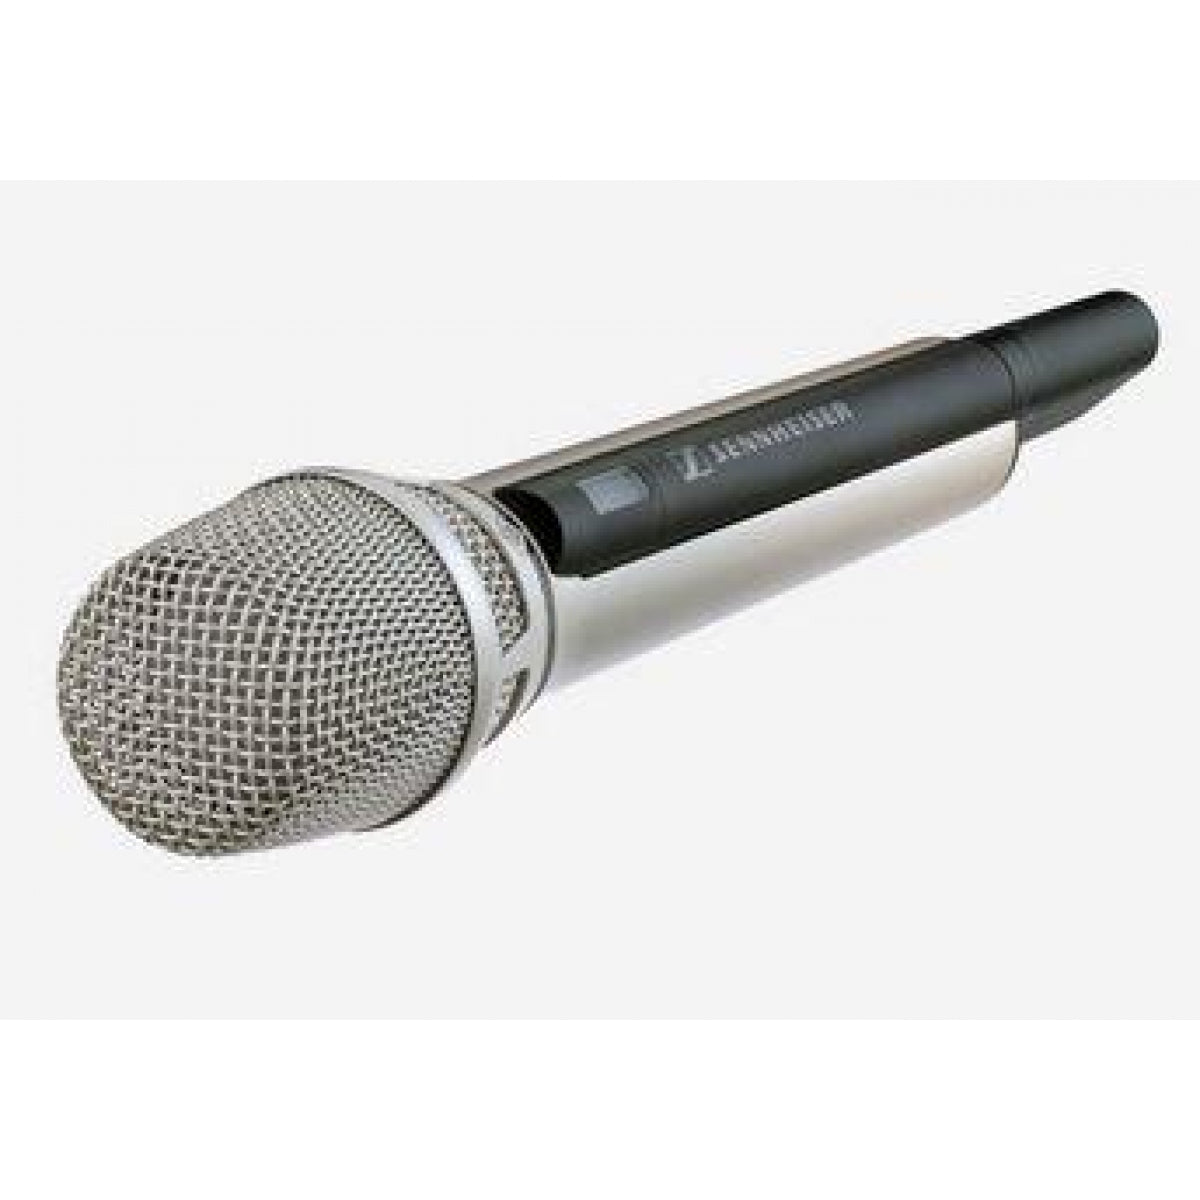 Sennheiser SKM 5200-IINI-N Handheld Microphone - Audio Leaders